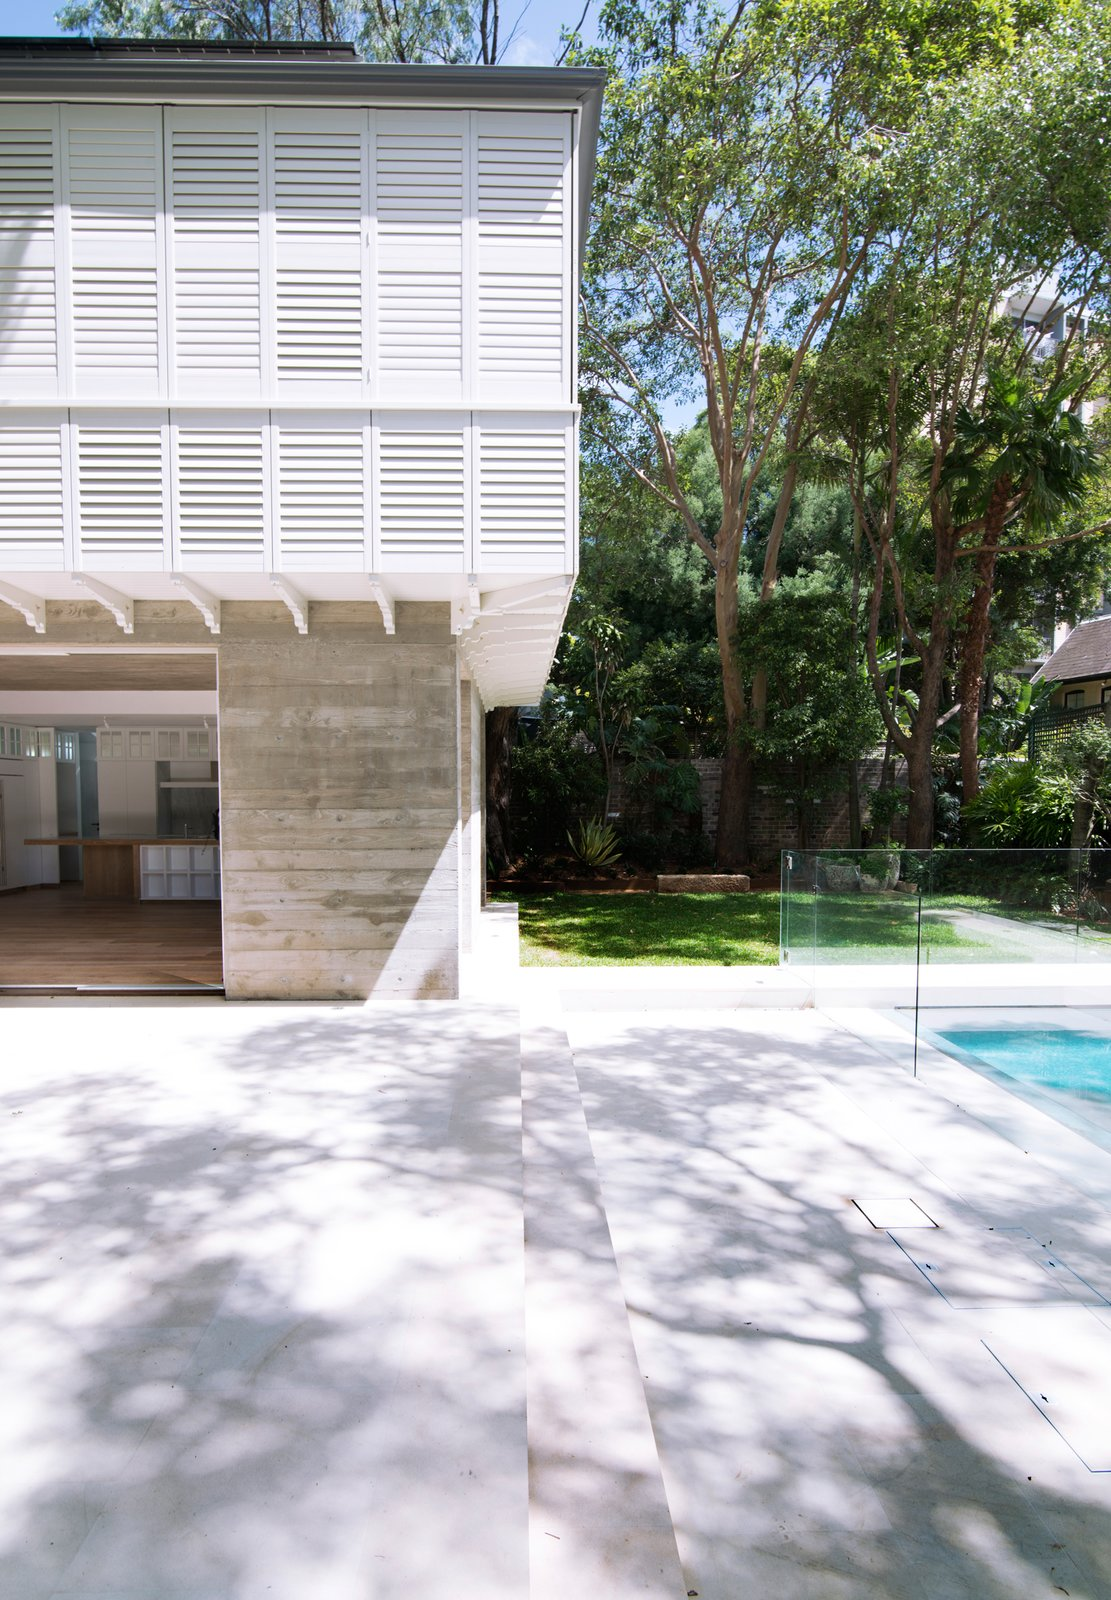 The shading for the upper bedroom floor is open to an infinite combination of the shutter operations, folding, retractable, tiling blades can be adjusted with the seasons; the windows below are shaded in the hottest hours by the loggia. © Edward Birch  Loggia in Arcadia by Luigi Rosselli Architects